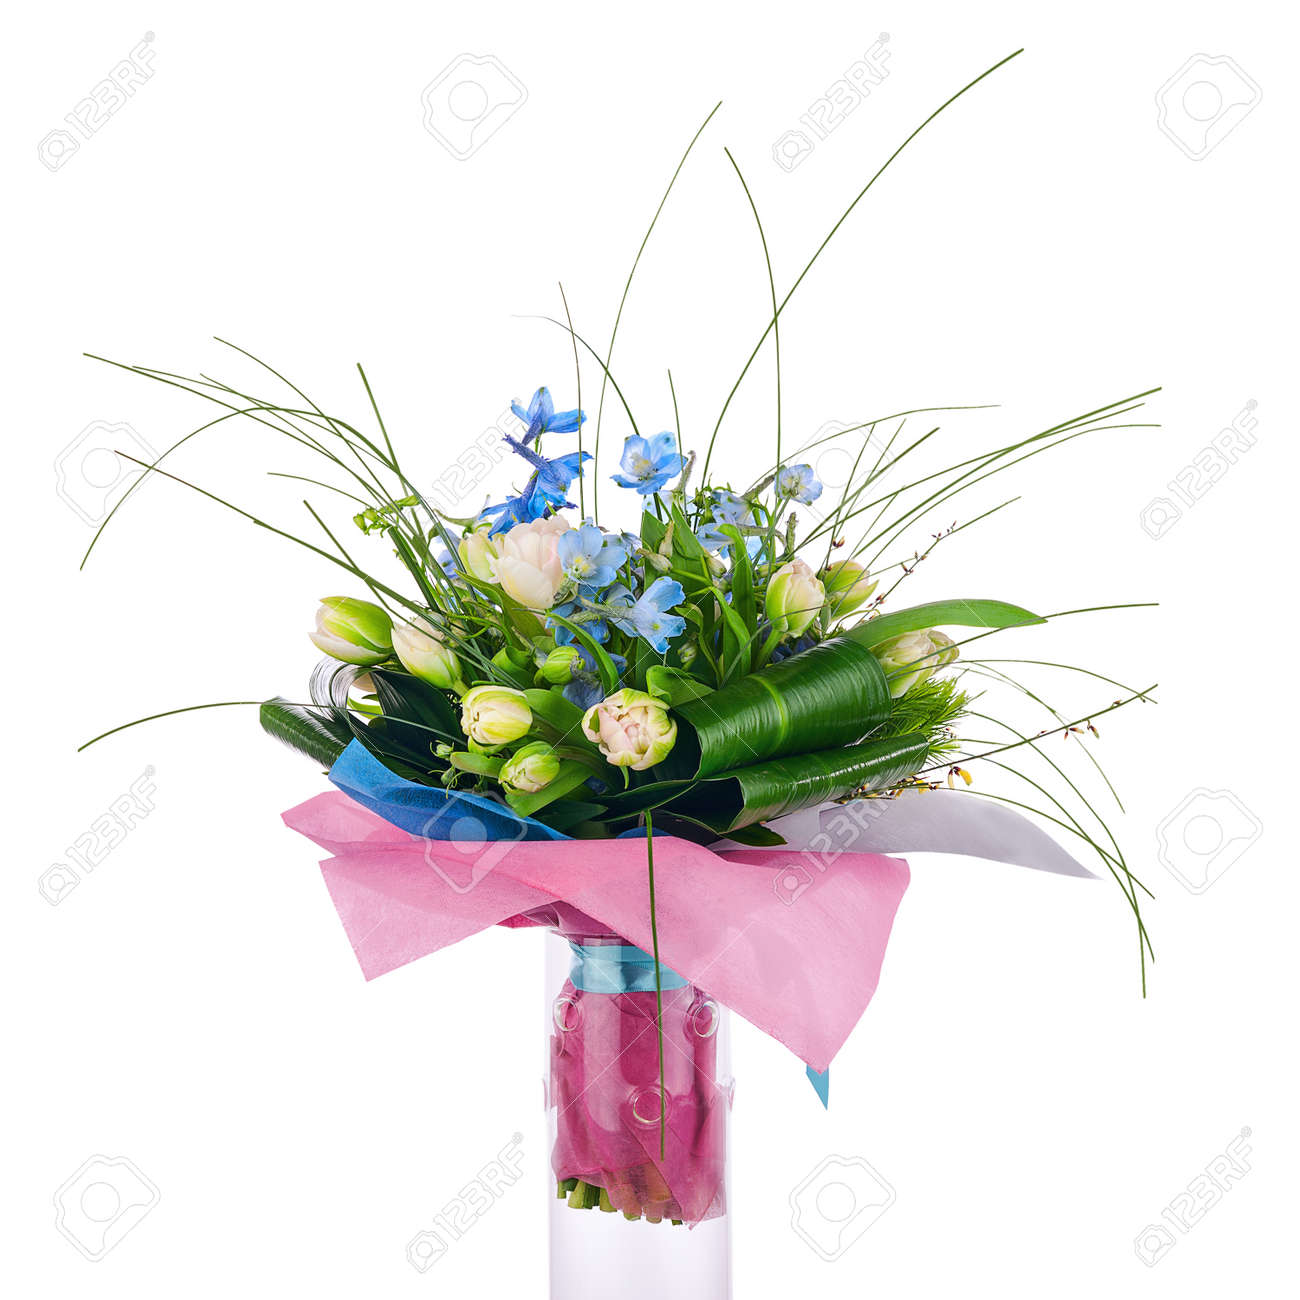 Flower Bouquet From Tulips Iris And Other Flowers Arrangement